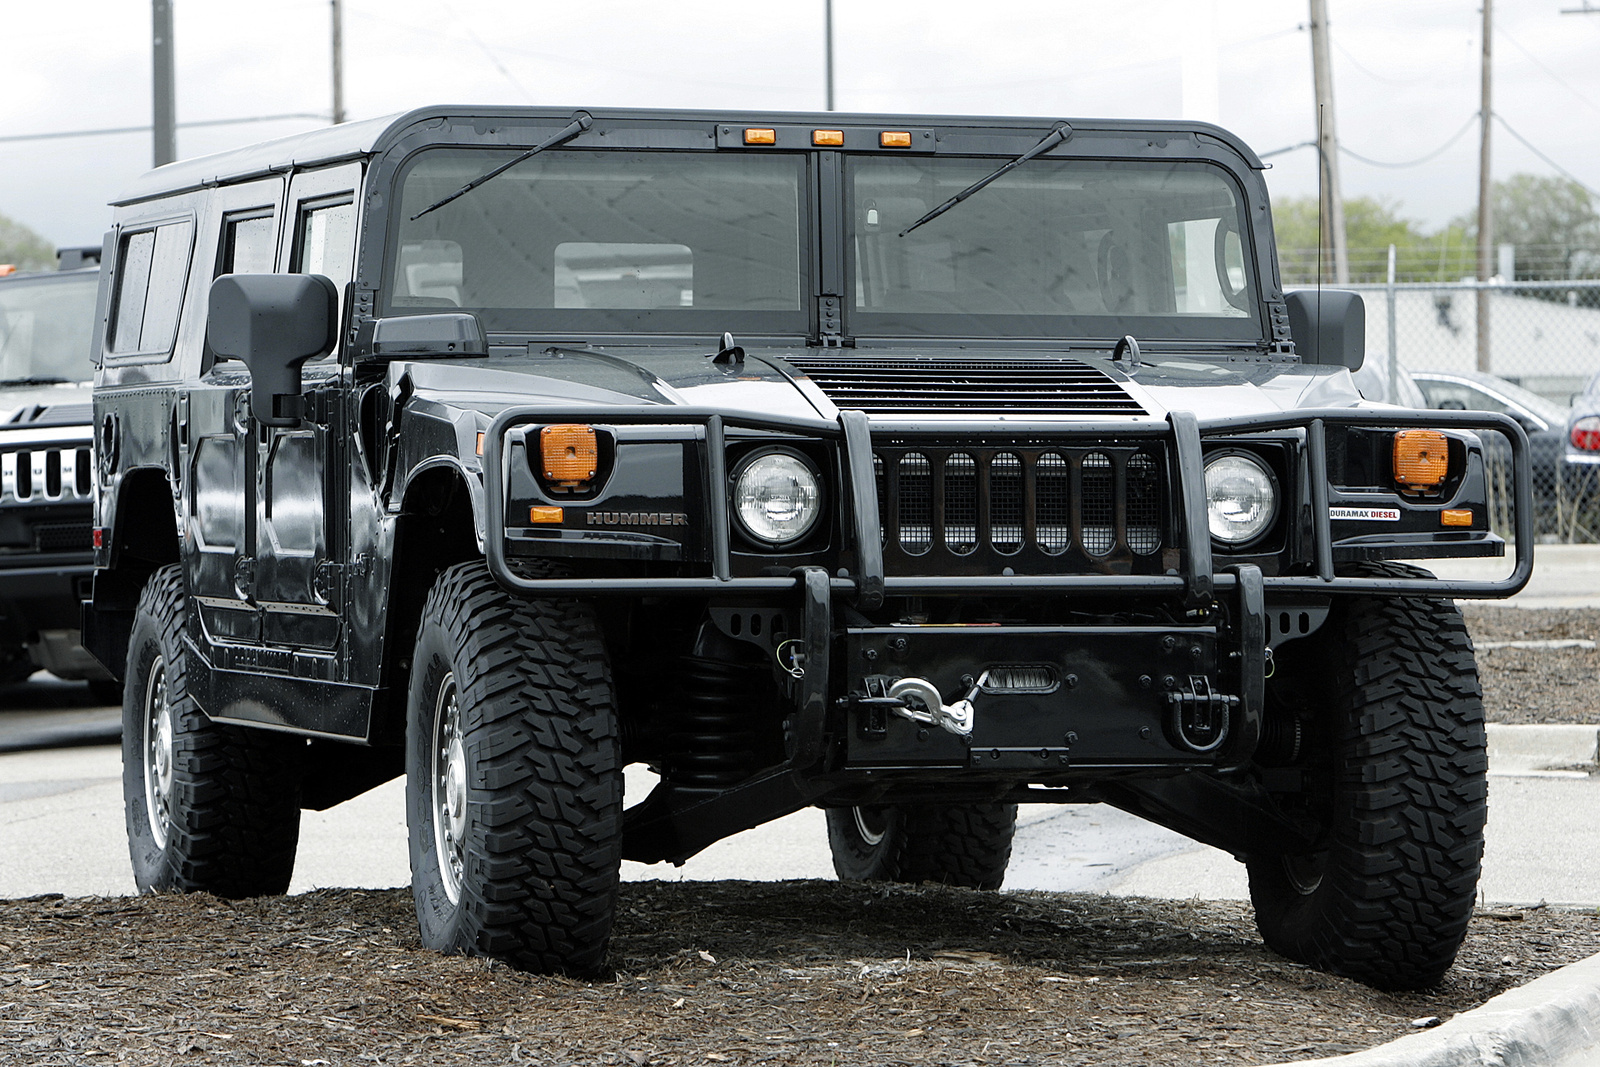 Suv vehicles and ultimate strongest in the world